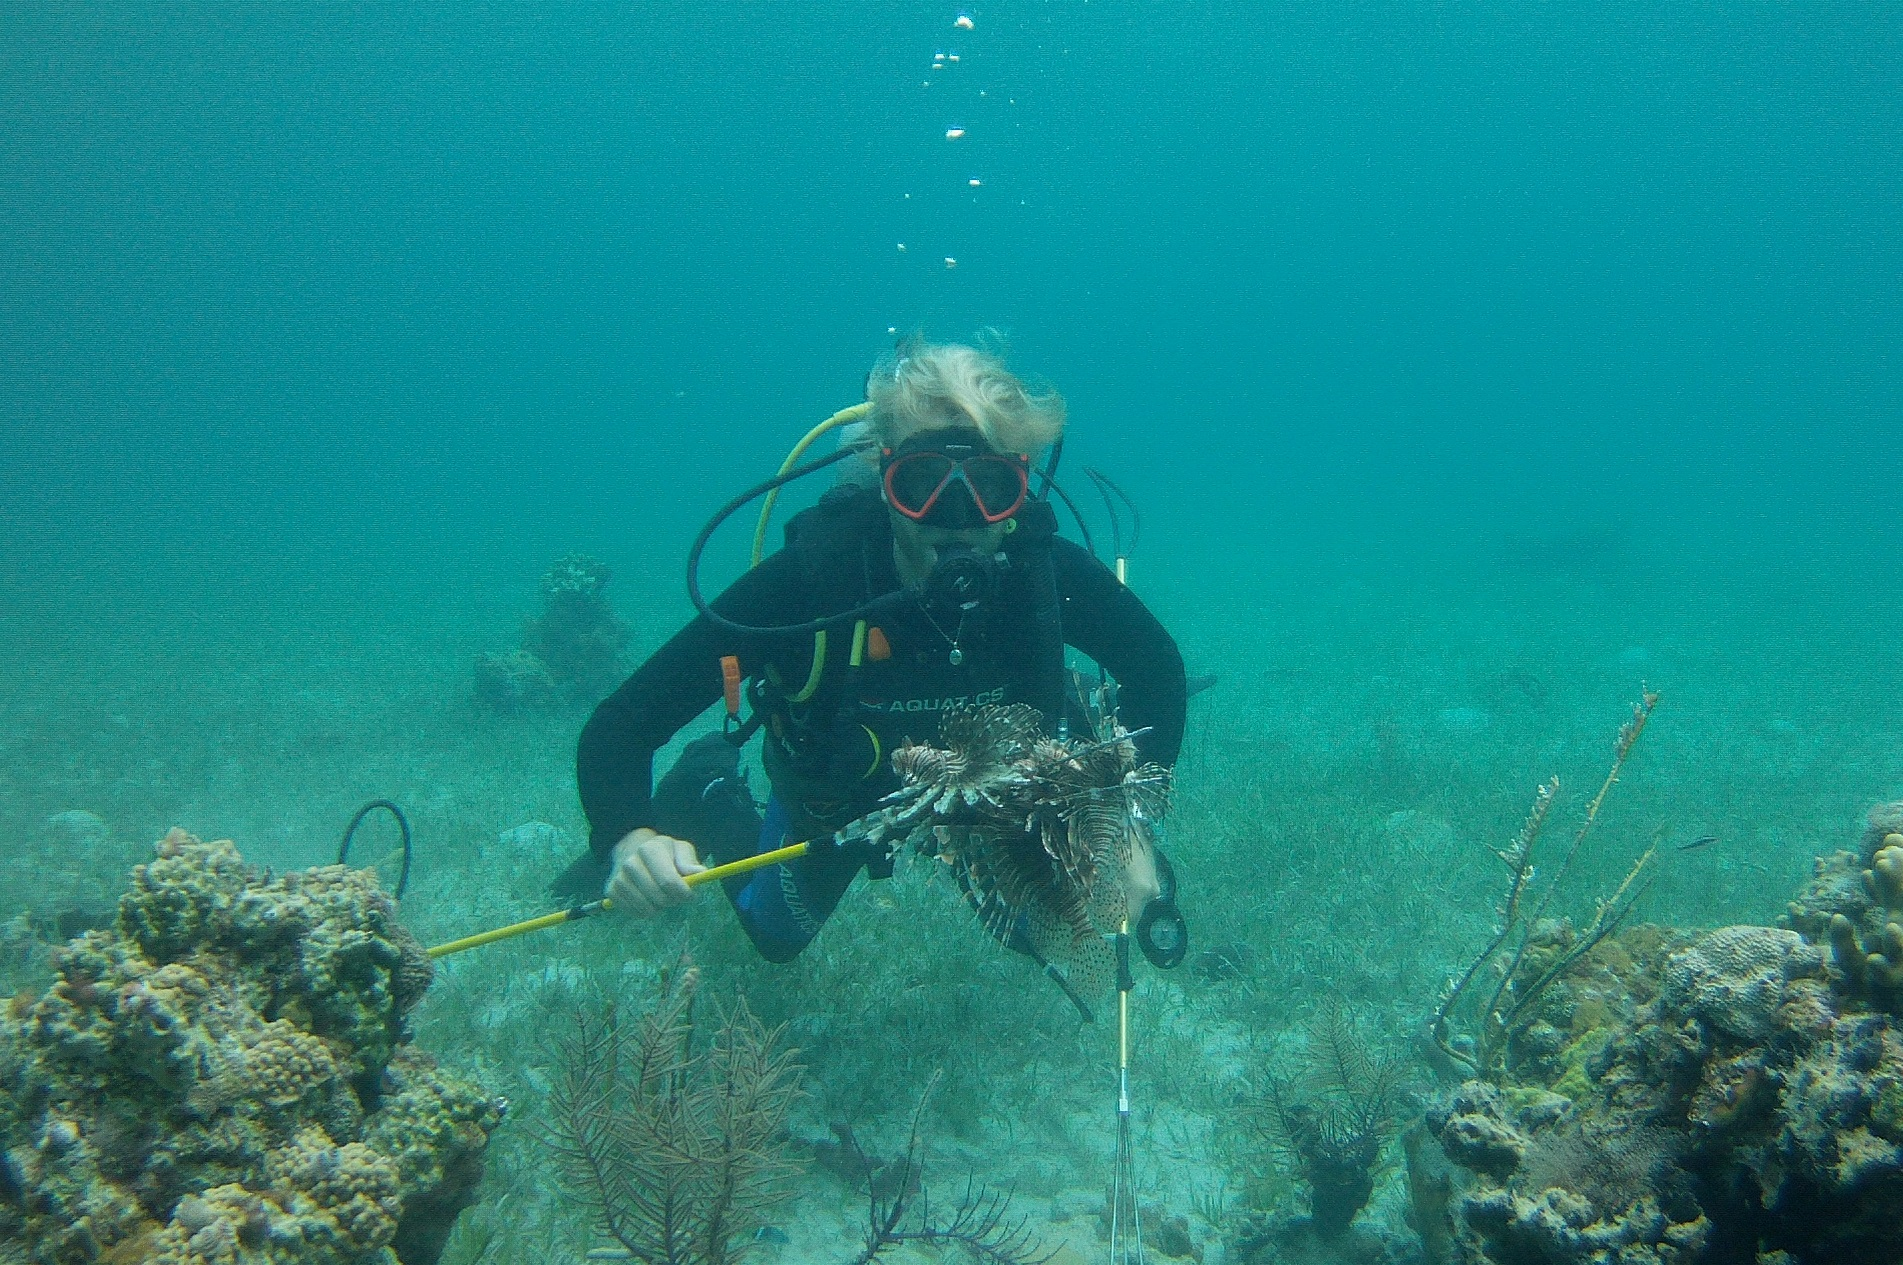 Adrian (SP 15 intern) does a great job removing a lionfish